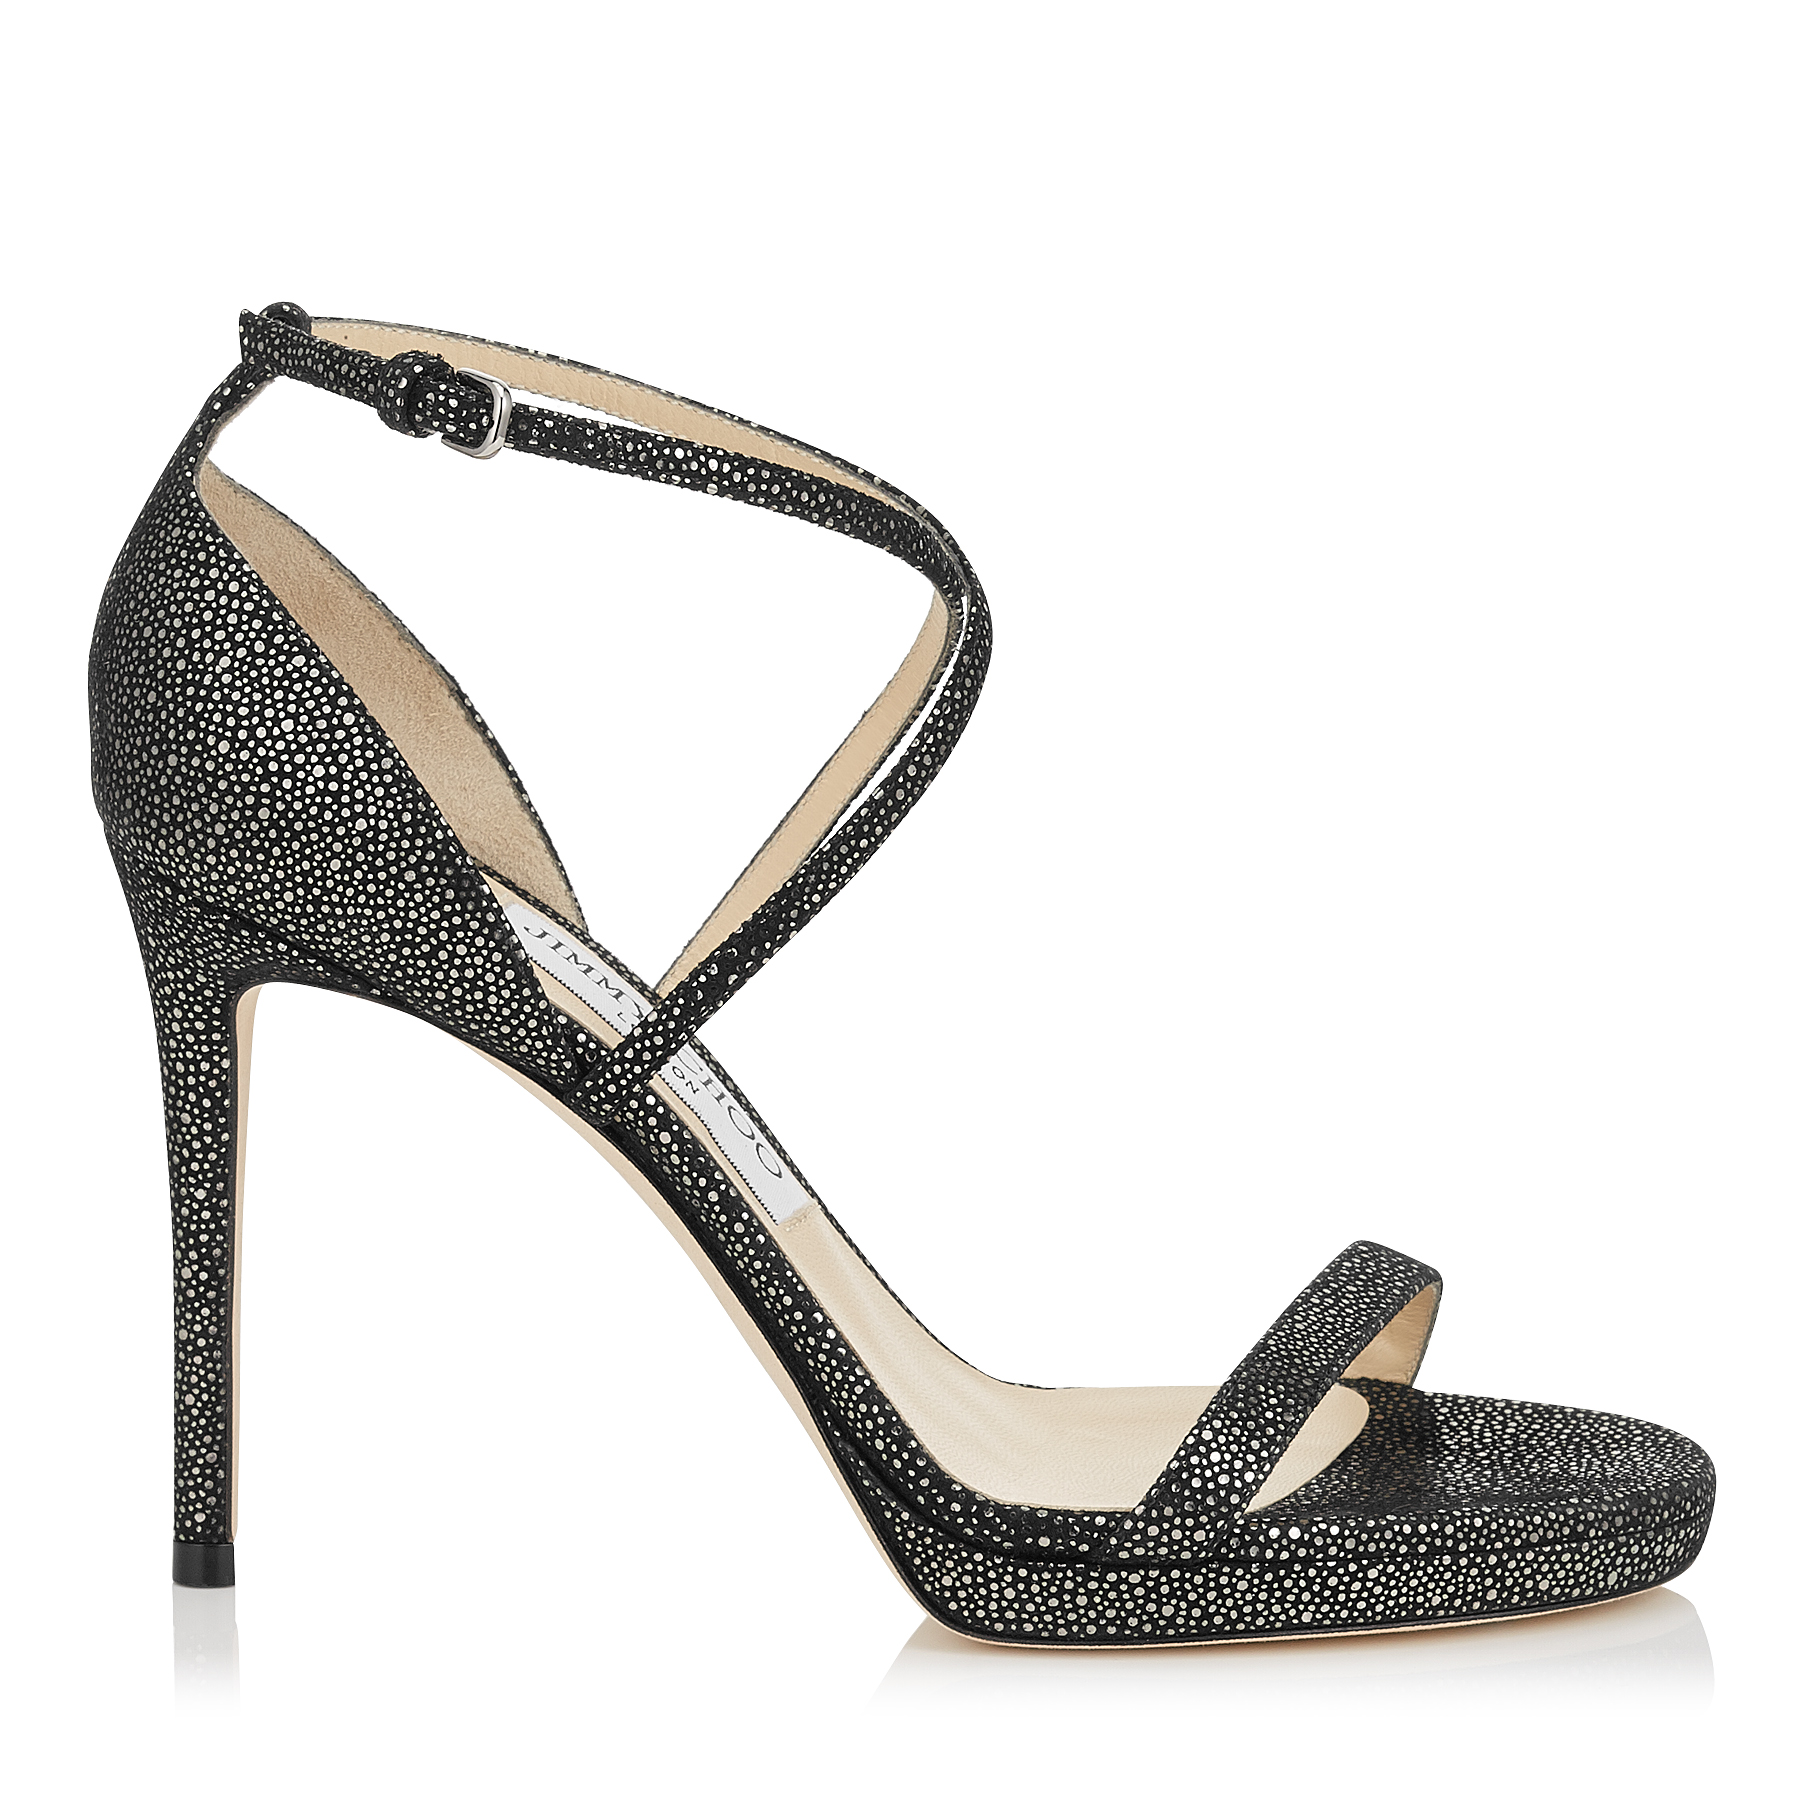 Photo of HARPER 100 Anthracite and Black Metallic Spotted Suede Sandals by Jimmy Choo womens shoes - buy Jimmy Choo footwear online